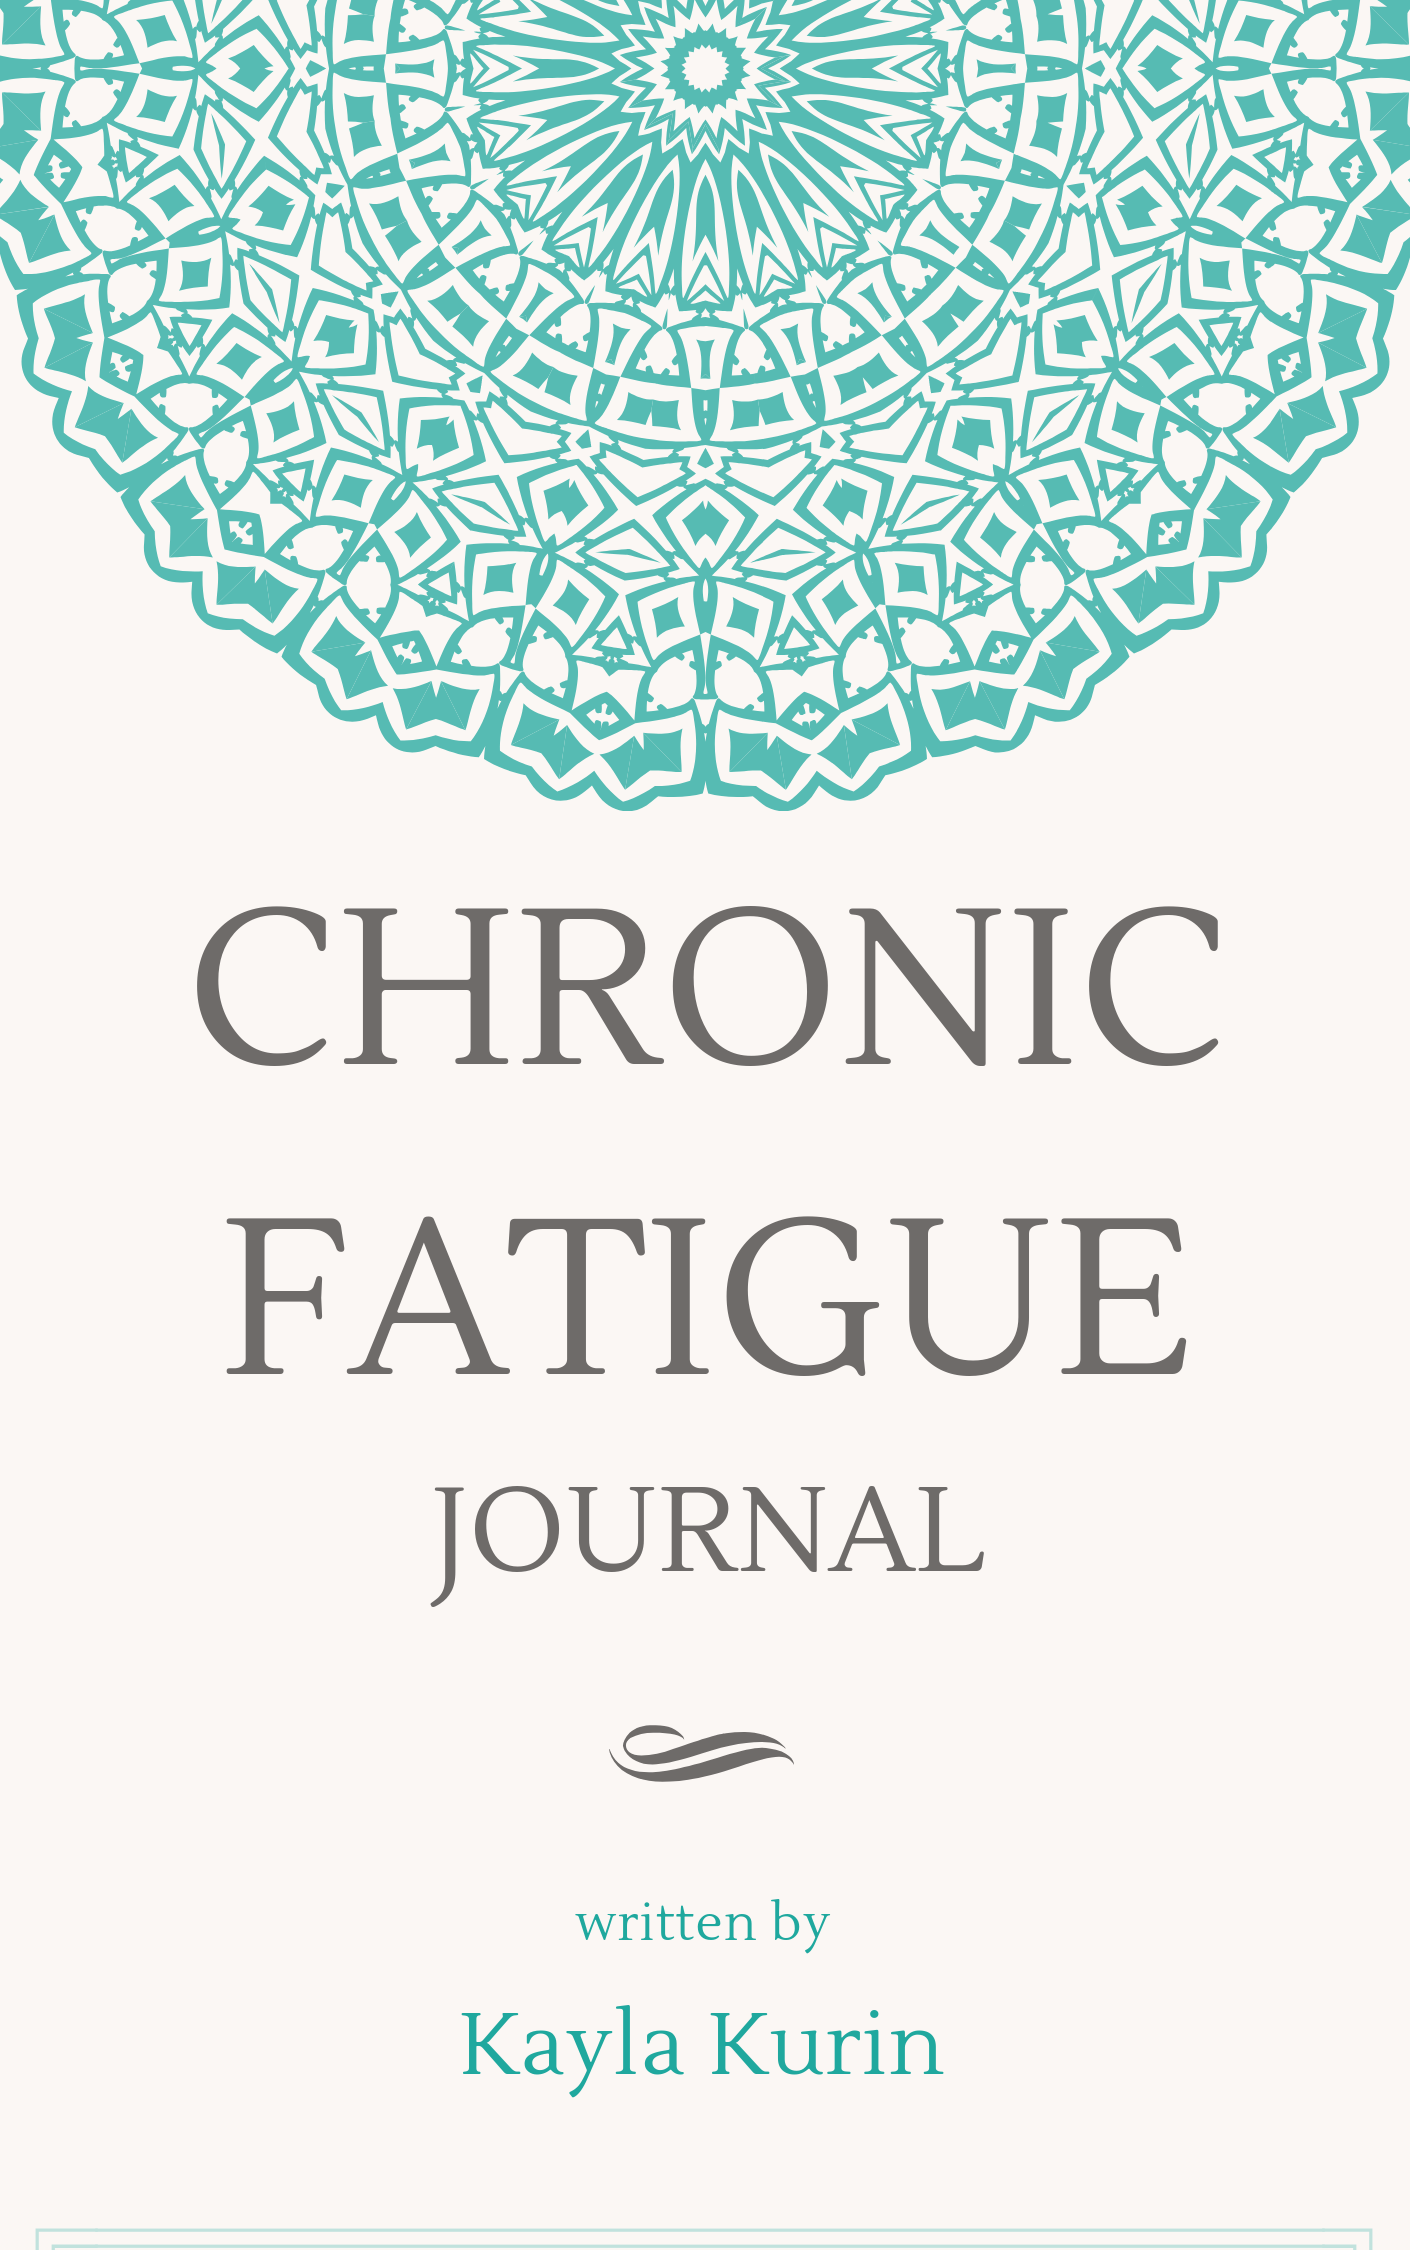 Track your journey to recovery with this free chronic fatigue journal